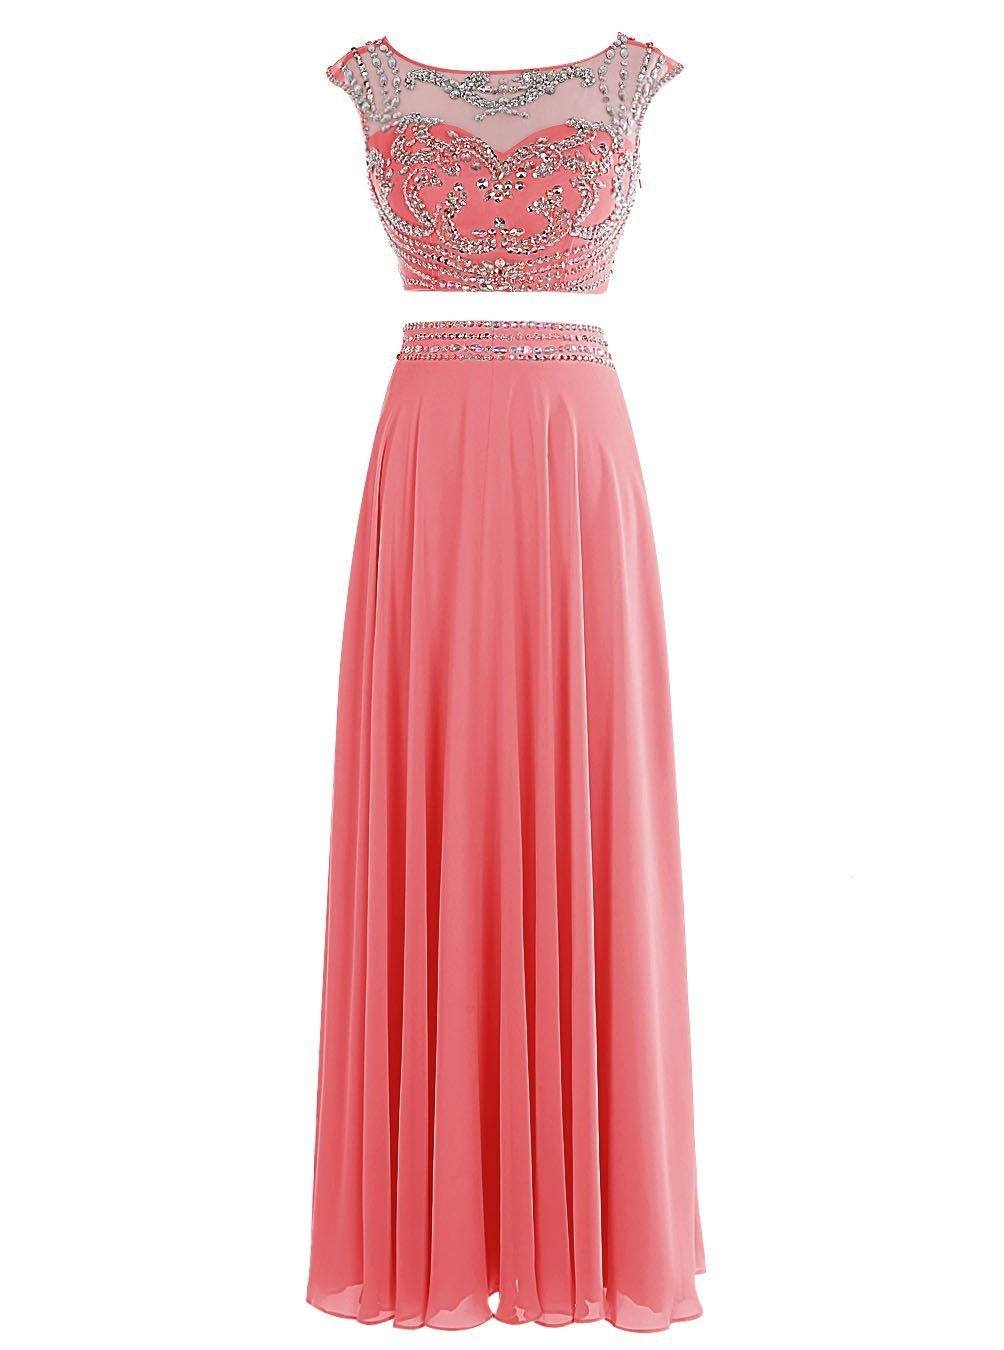 Snowskite Women's Long Two Pieces Chiffon Beaded Prom Evening Dress Coral 18